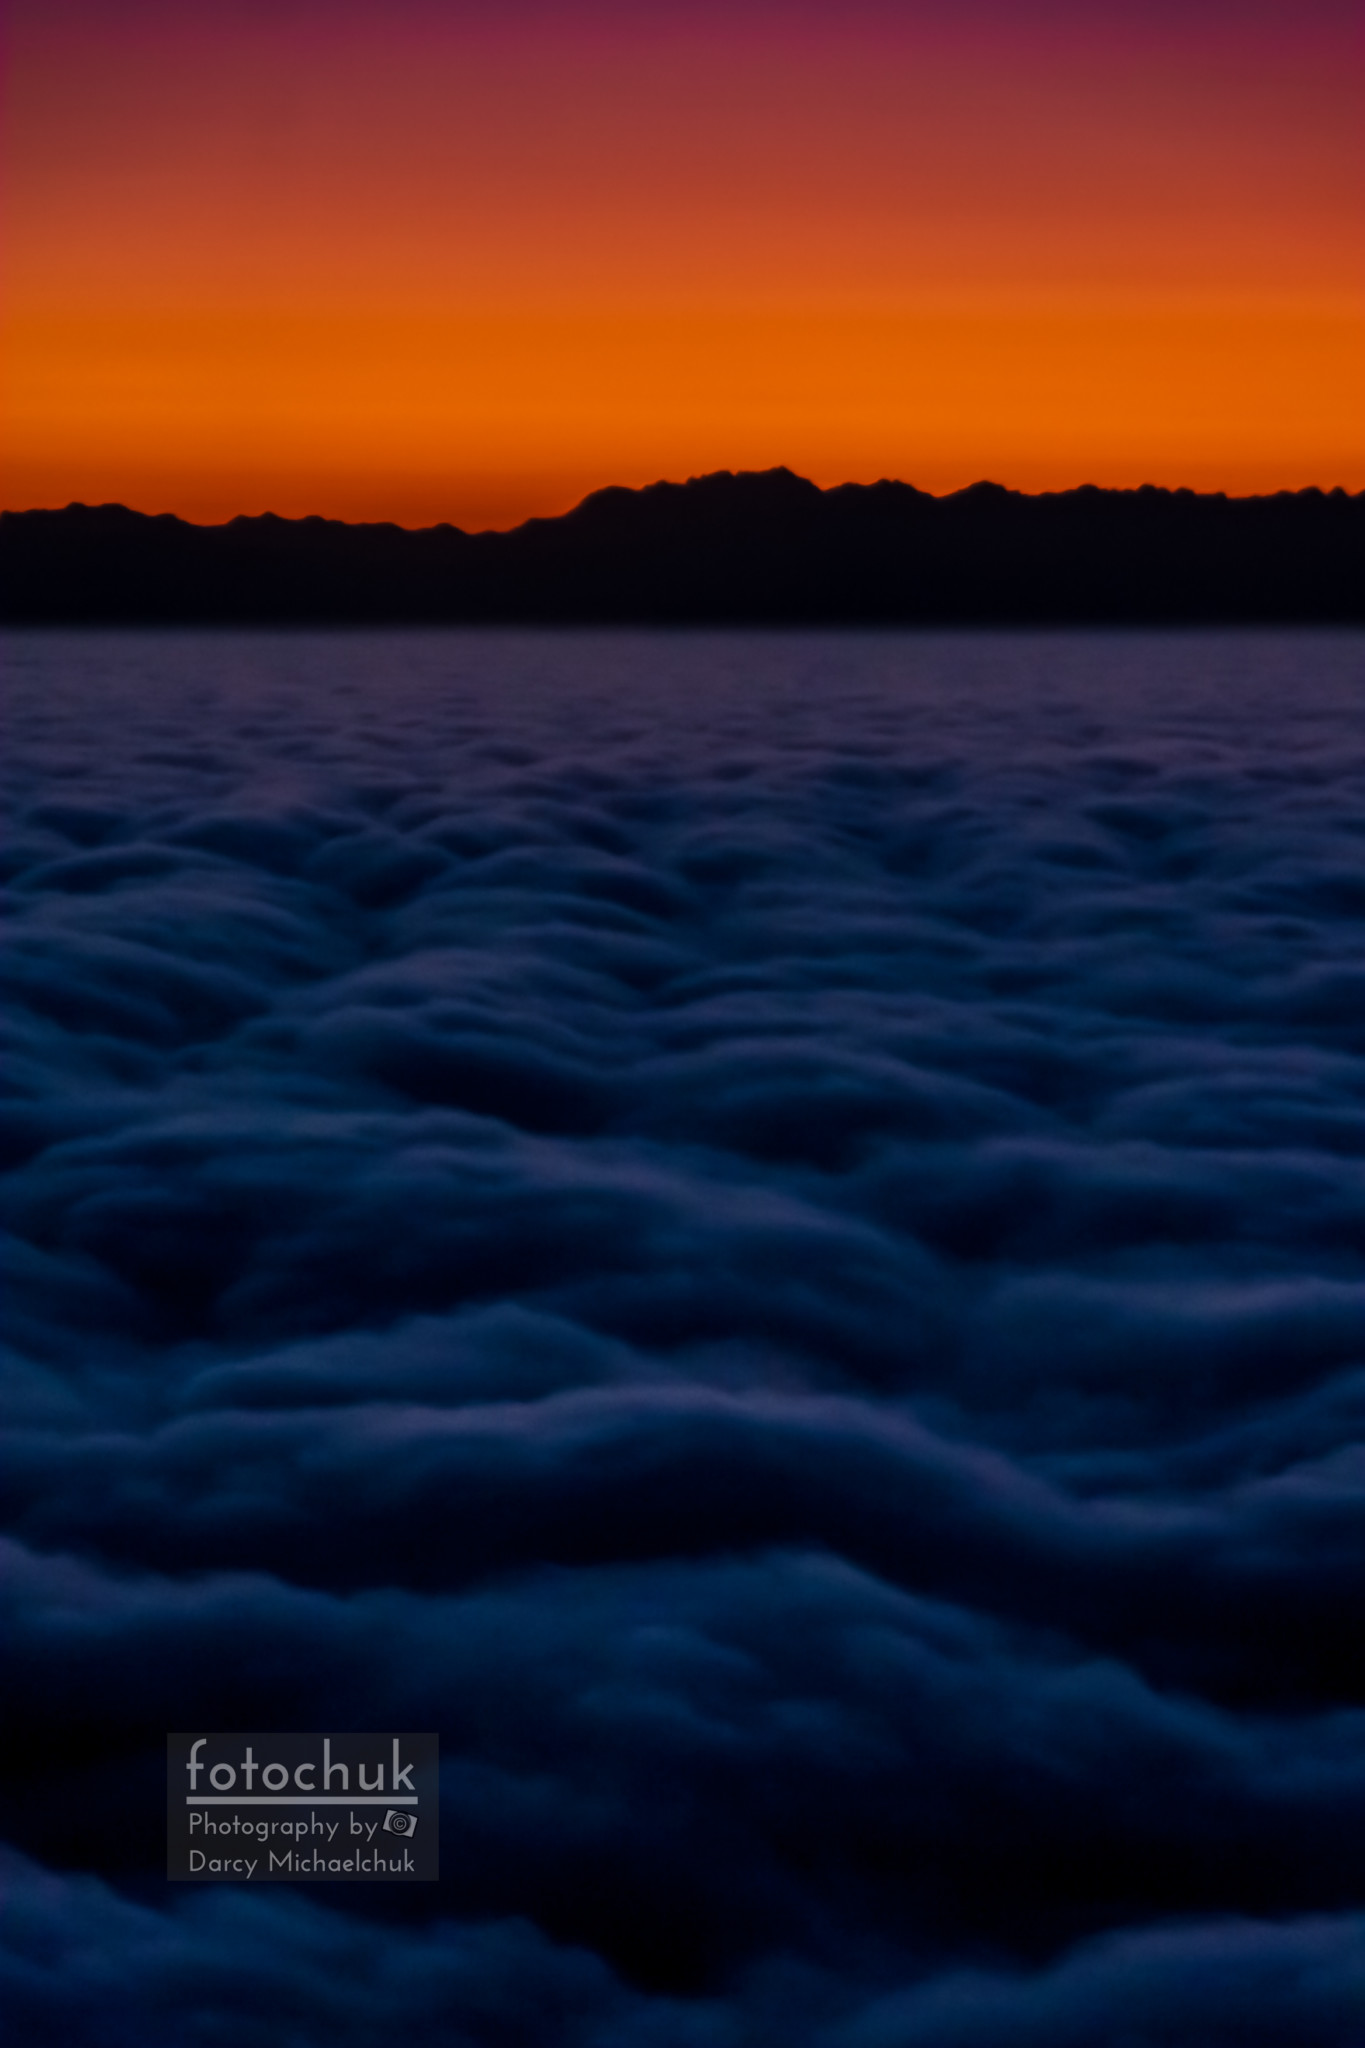 Mountain Silhouette Over Sea of Clouds Portrait